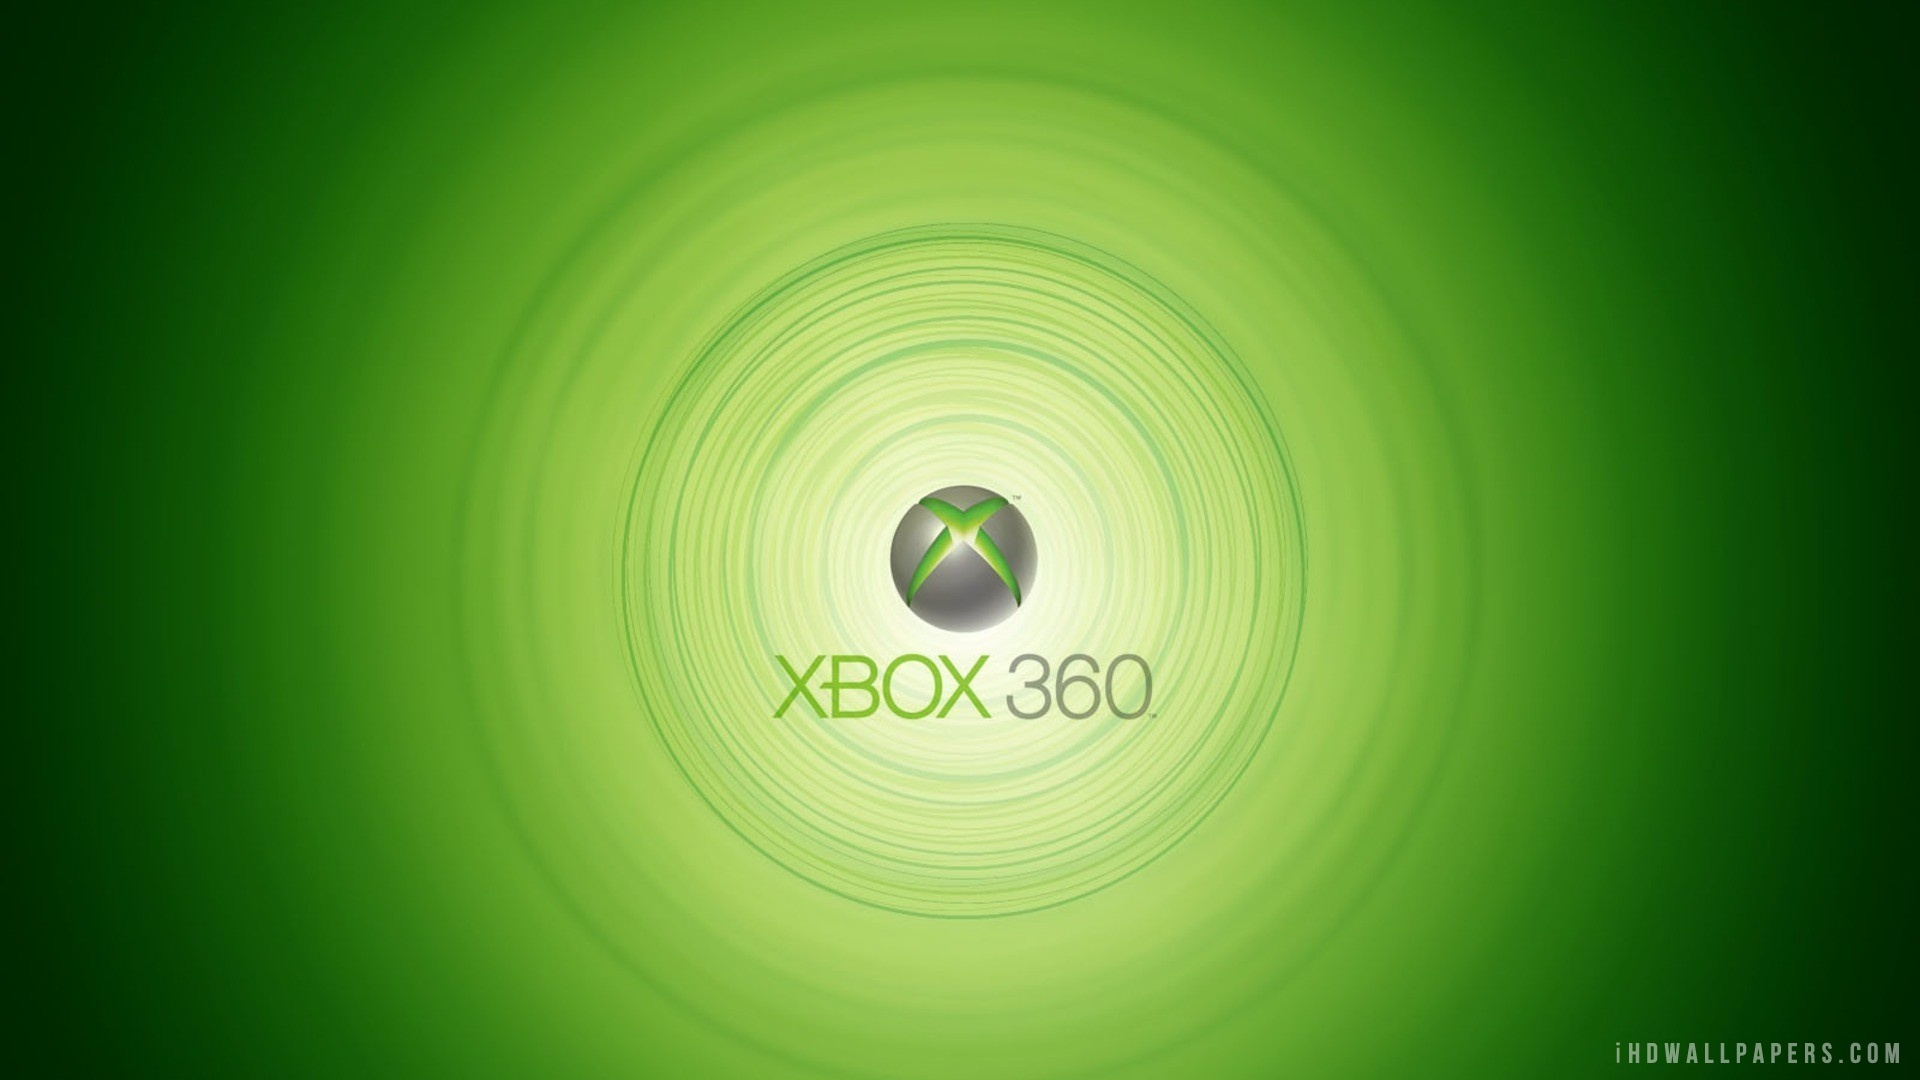 Cool Xbox Backgrounds - Wallpapers Browse